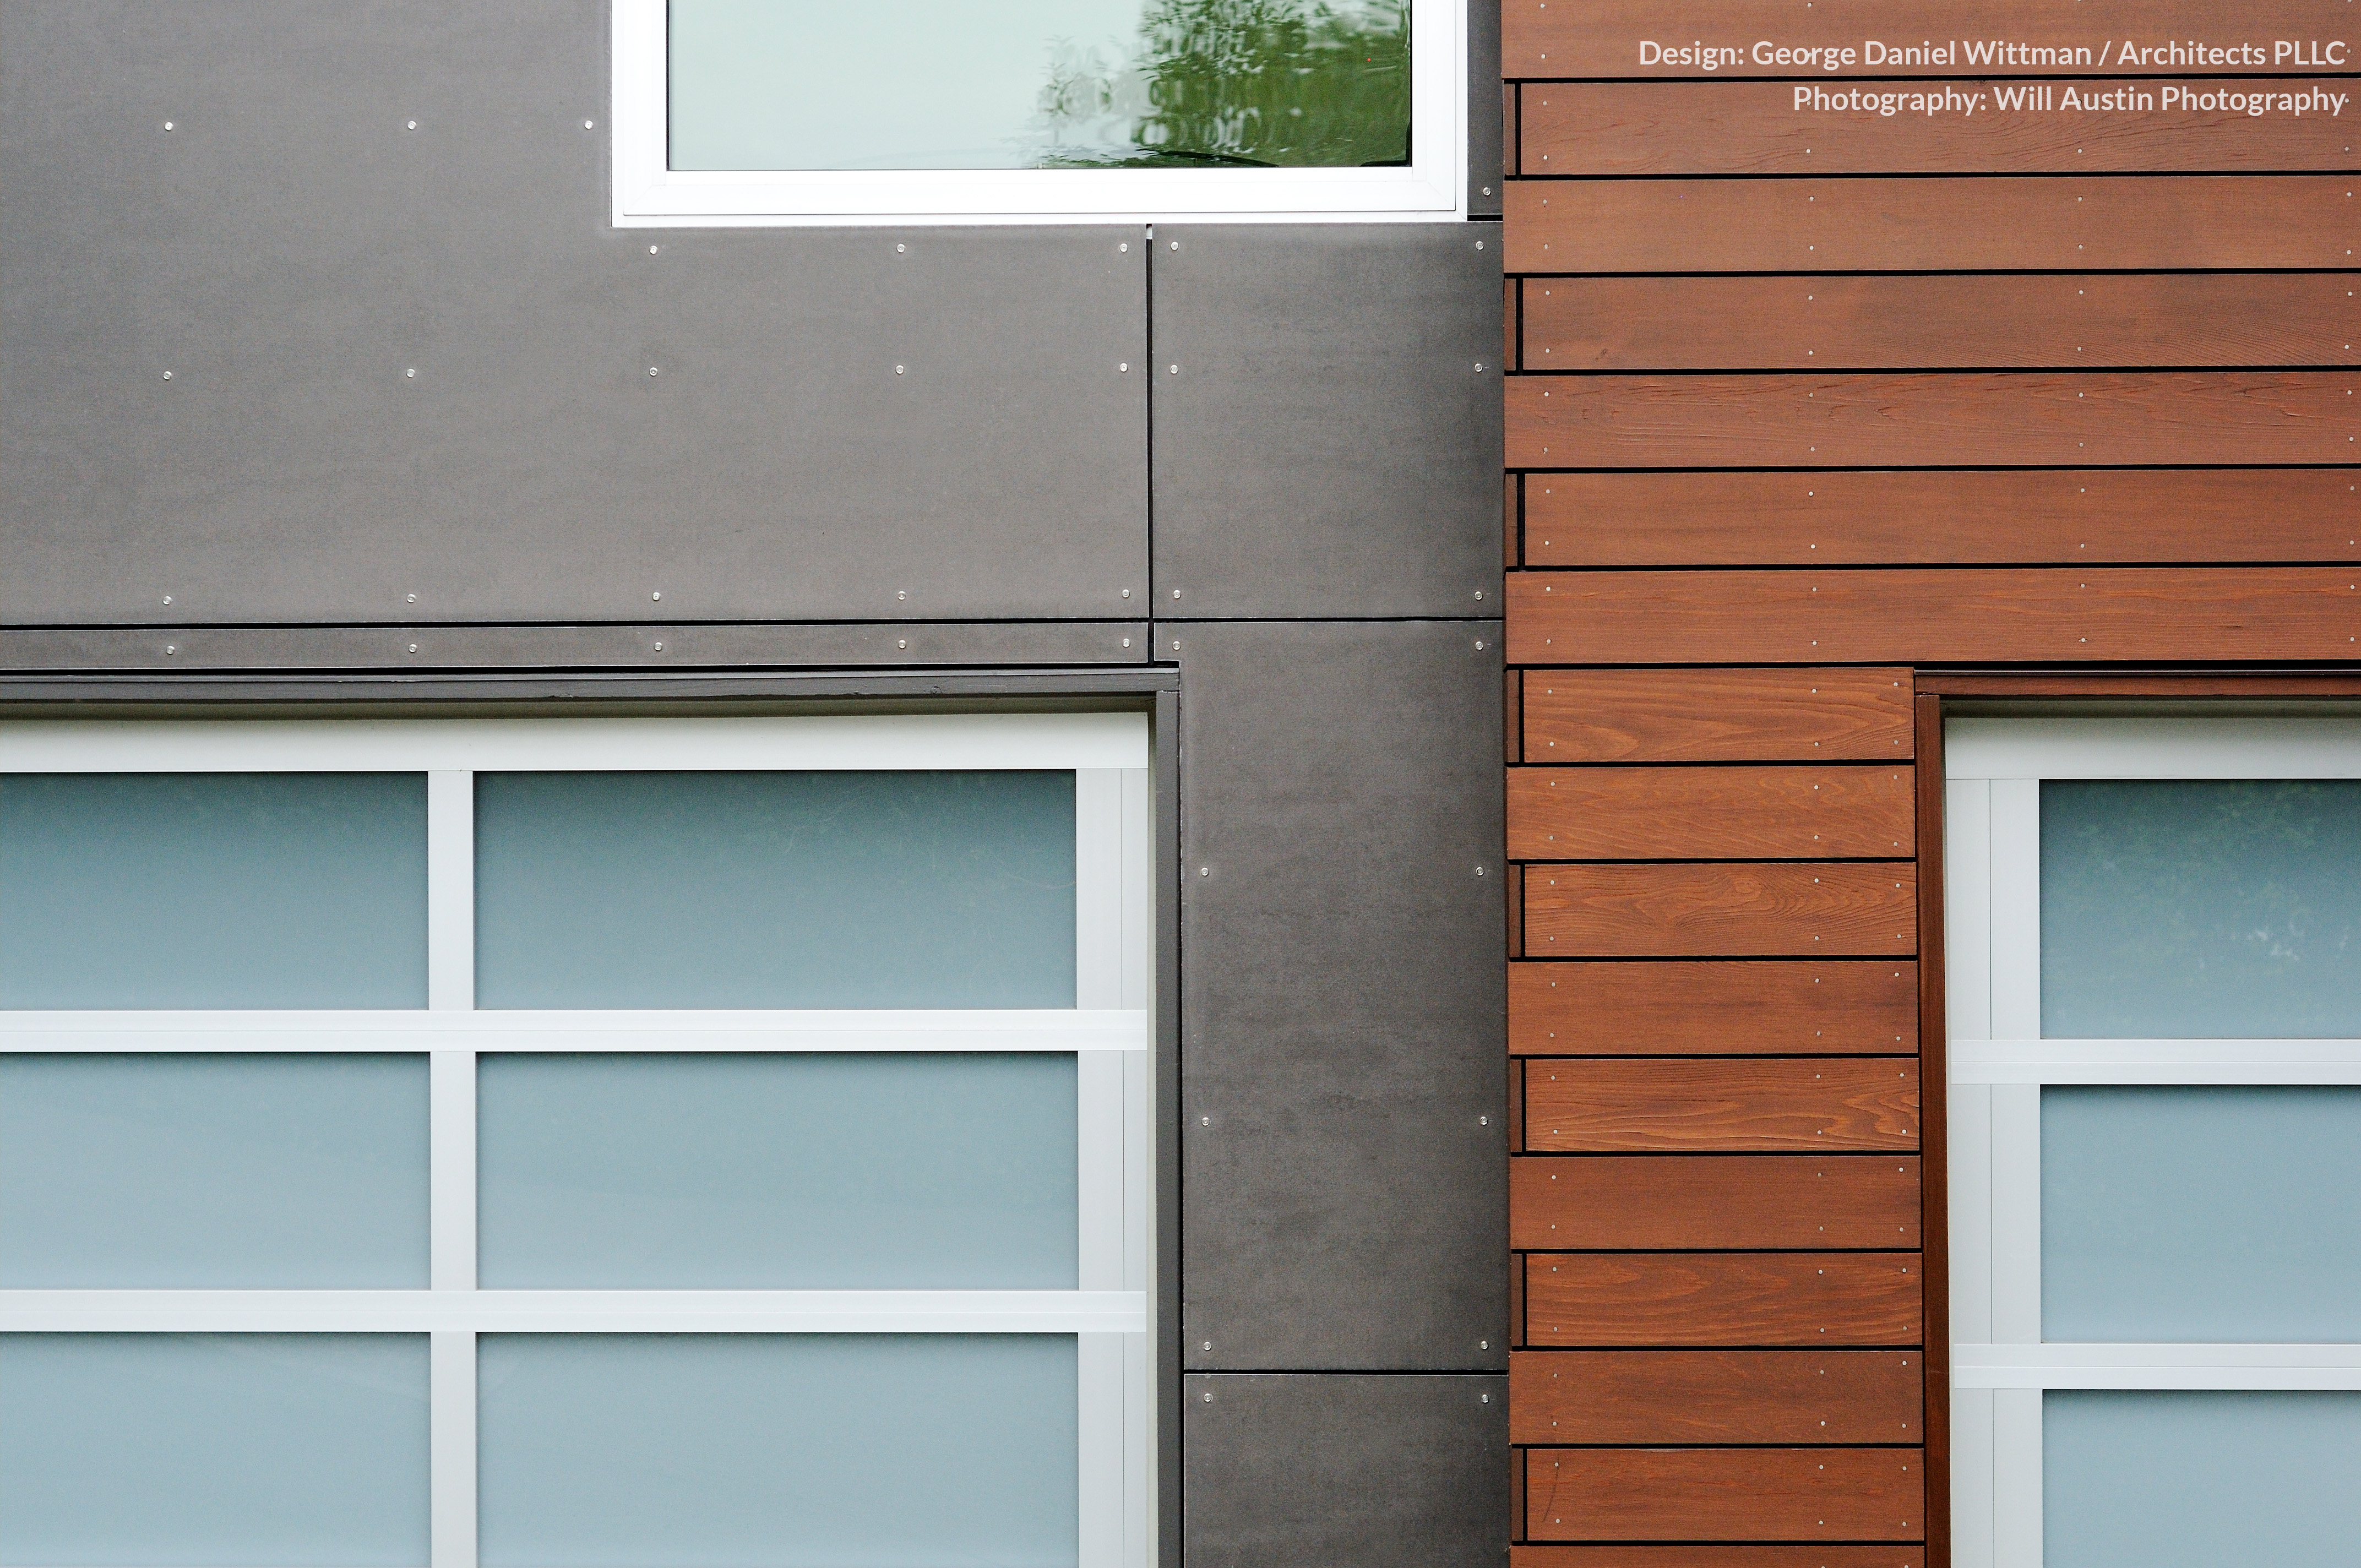 This shot of the exterior highlights the point at which cedar planks meet the cement board panels. The glass and metal garage doors can be seen here.